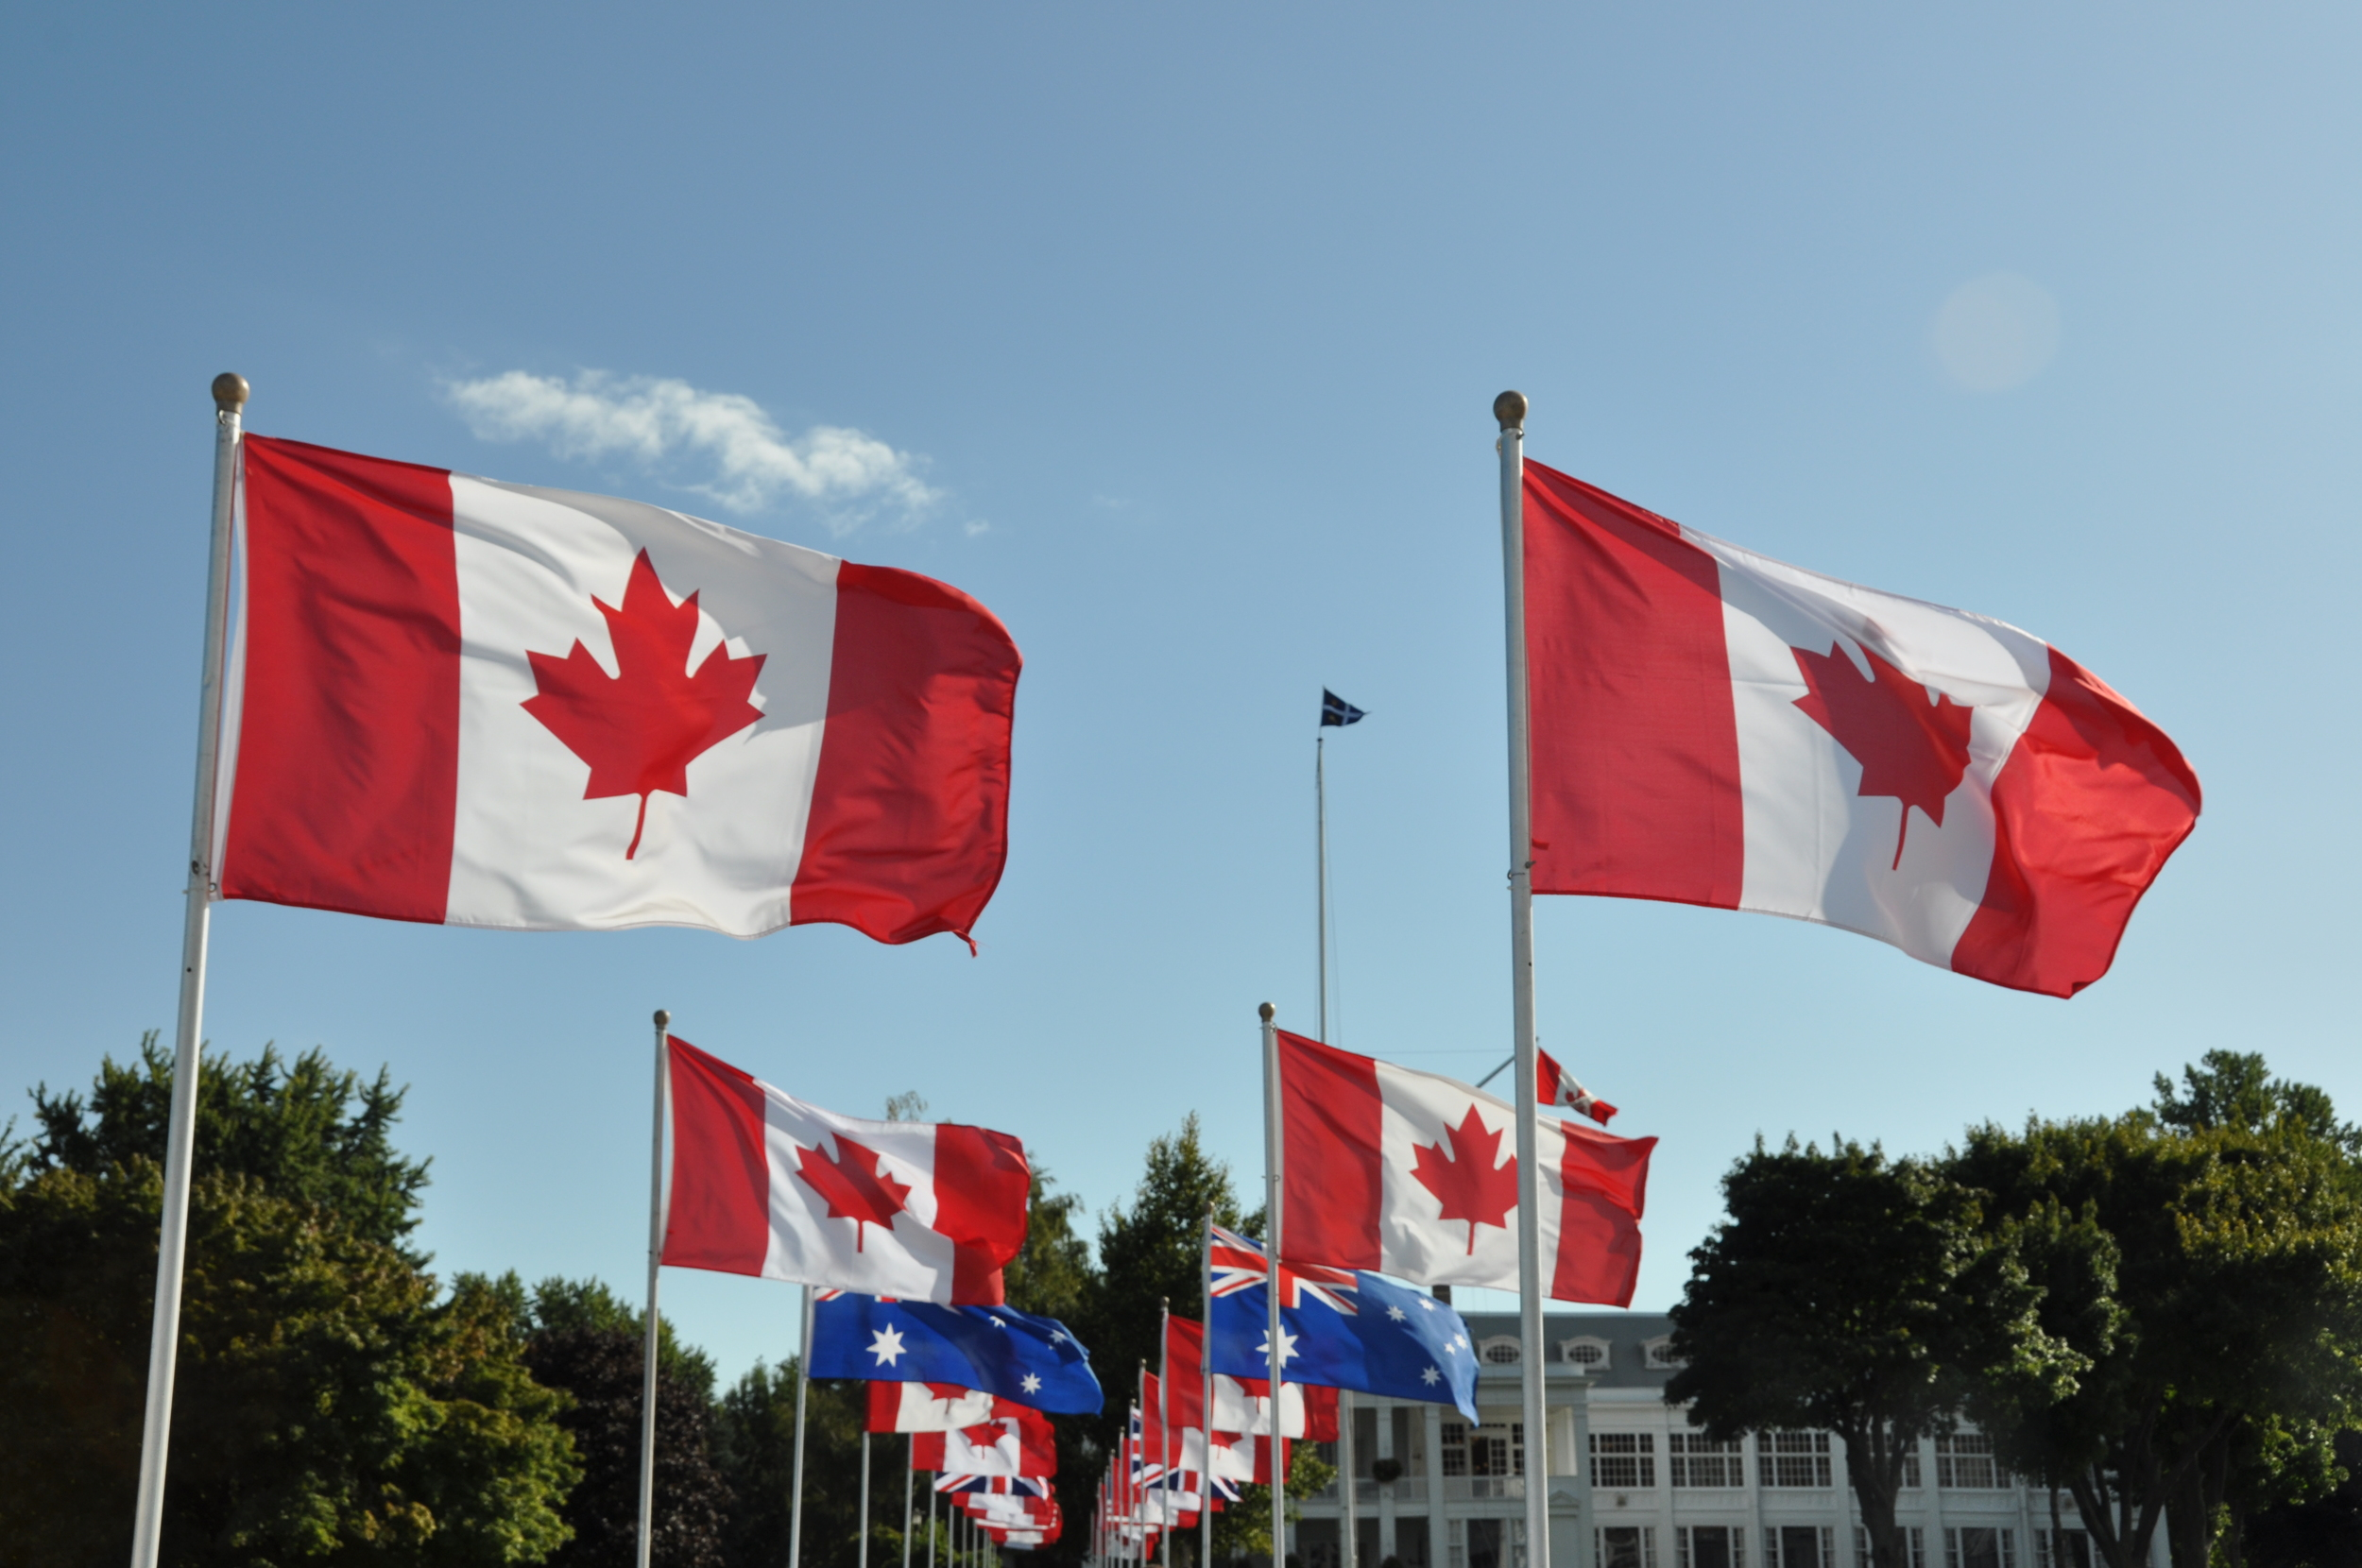 Royal Canadian Yacht Club Flags